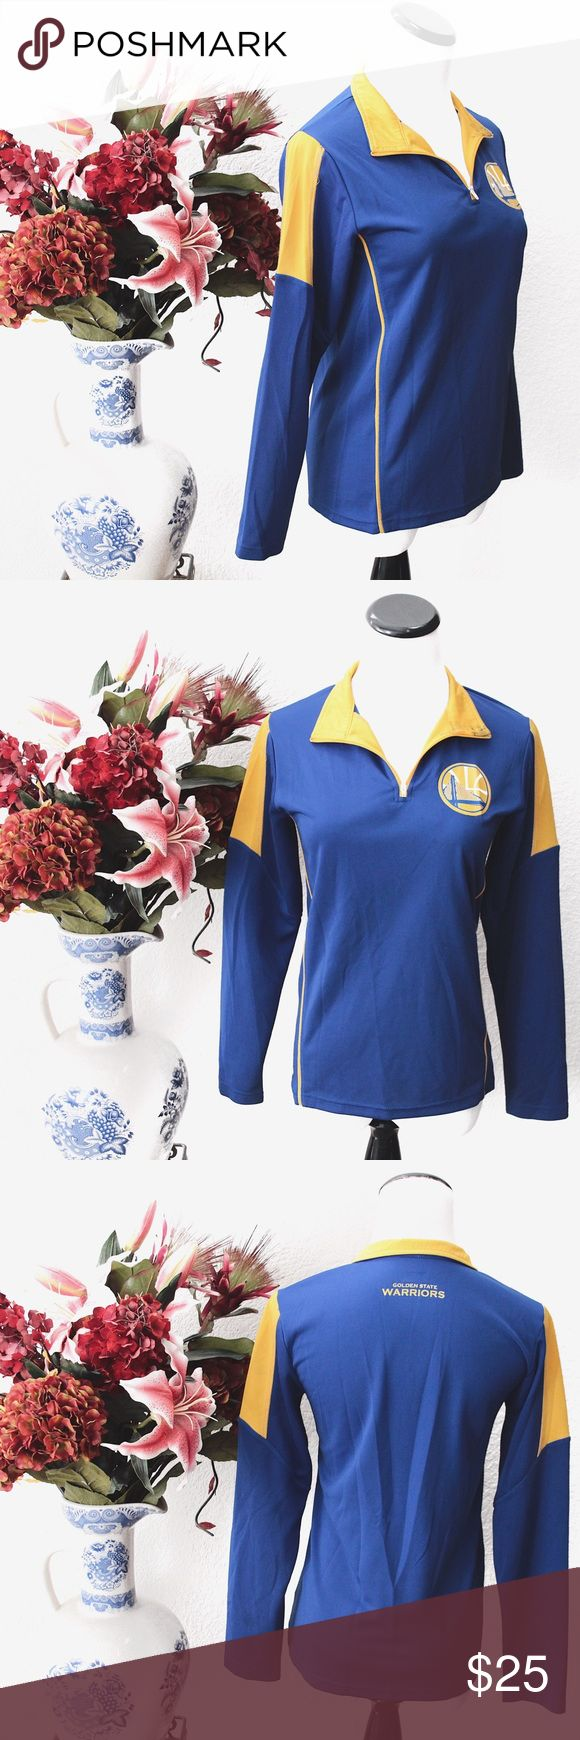 """NBA Golden State Warriors Half-Zip Long Sleeve ⌁ Measurements: 23"""" length 17"""" pit-to-pit 22"""" sleeve  ⌁ Material: 100% polyester  ⌁ Condition: Used once. Has some faint stains as shown. Some of them are hard to take a picture of. There is also some stain on the collar that I'm not sure how to remove.  ⌁ Note: Kids' M = womens' XS/S.  Comment below if you have any questions. Please make all offers using the """"offer"""" button. No trades. No holds. Comes from a smoke-free/pet-free home. Not…"""